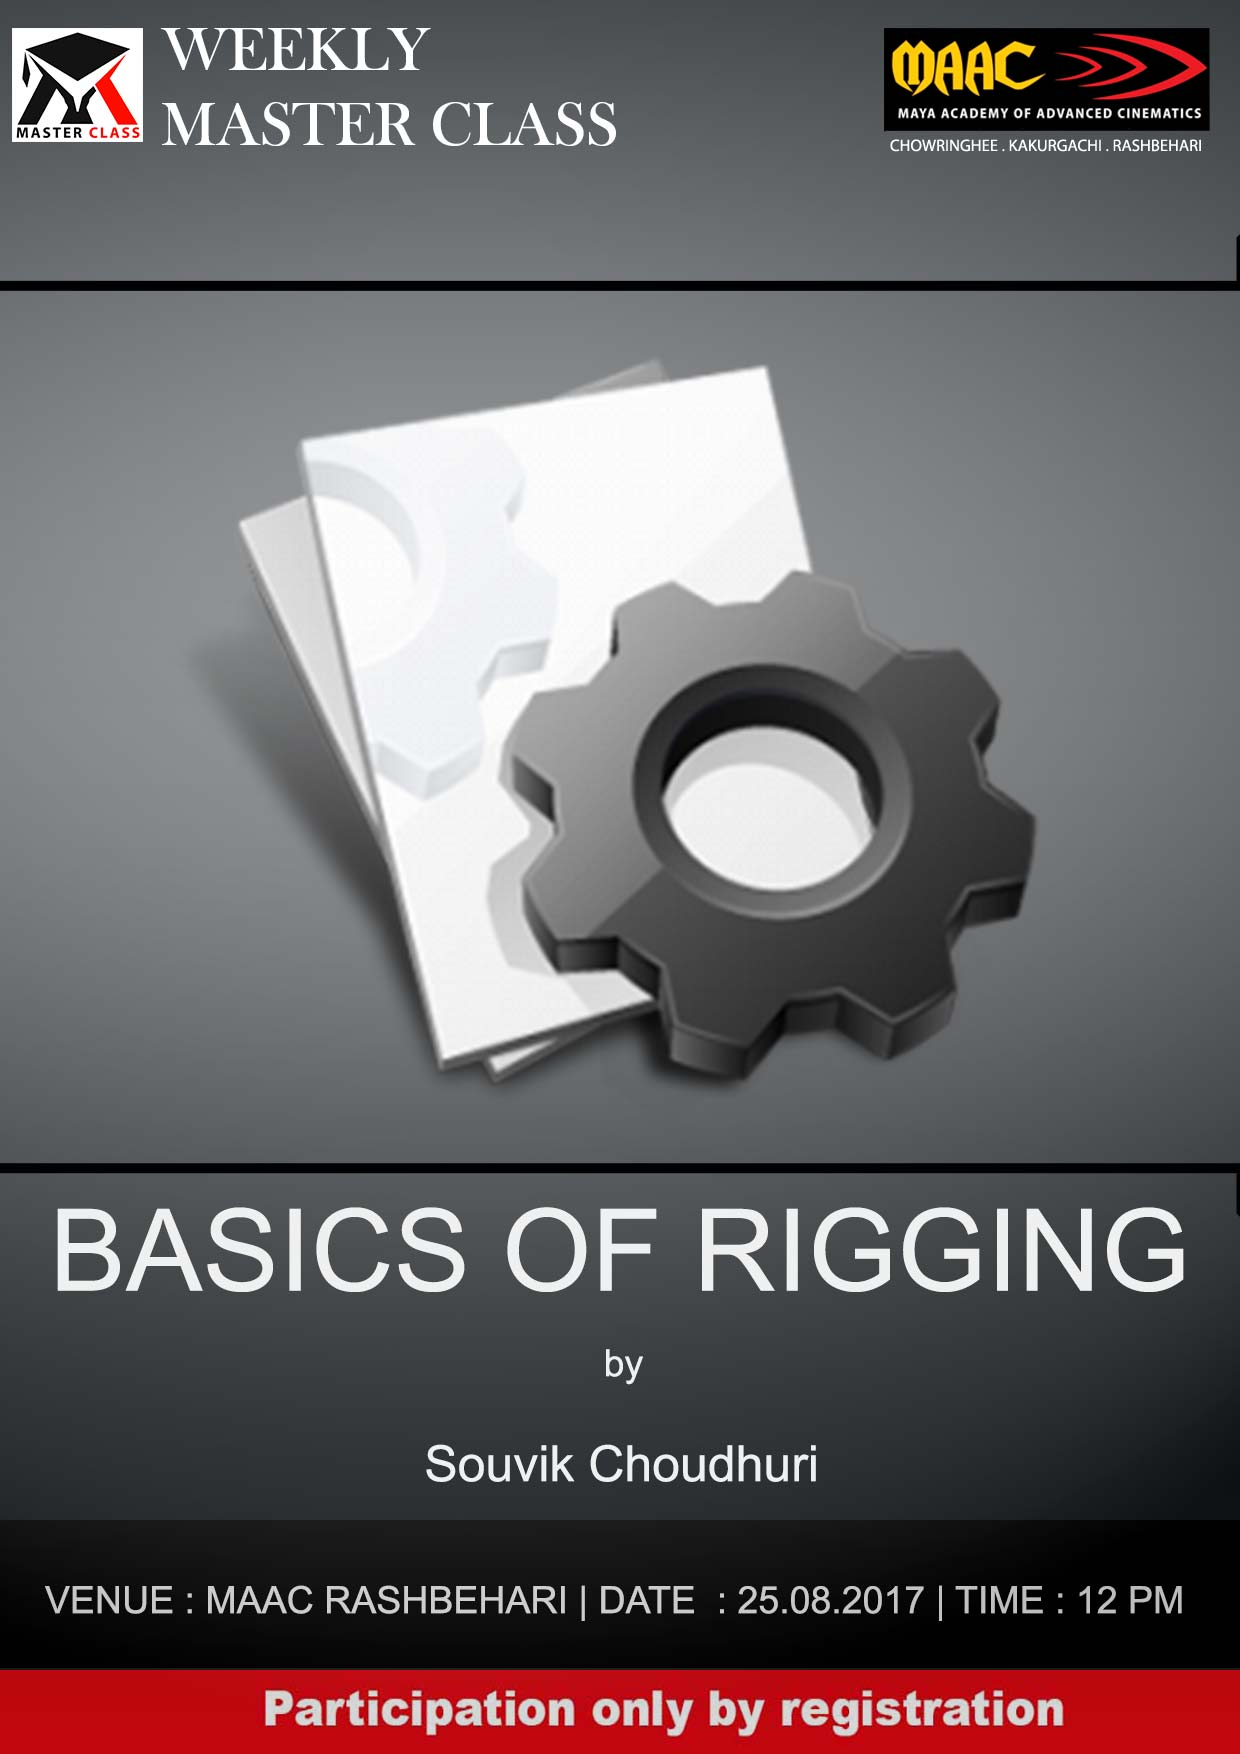 Weekly Master Class on Basics of Rigging - Souvik Choudhuri